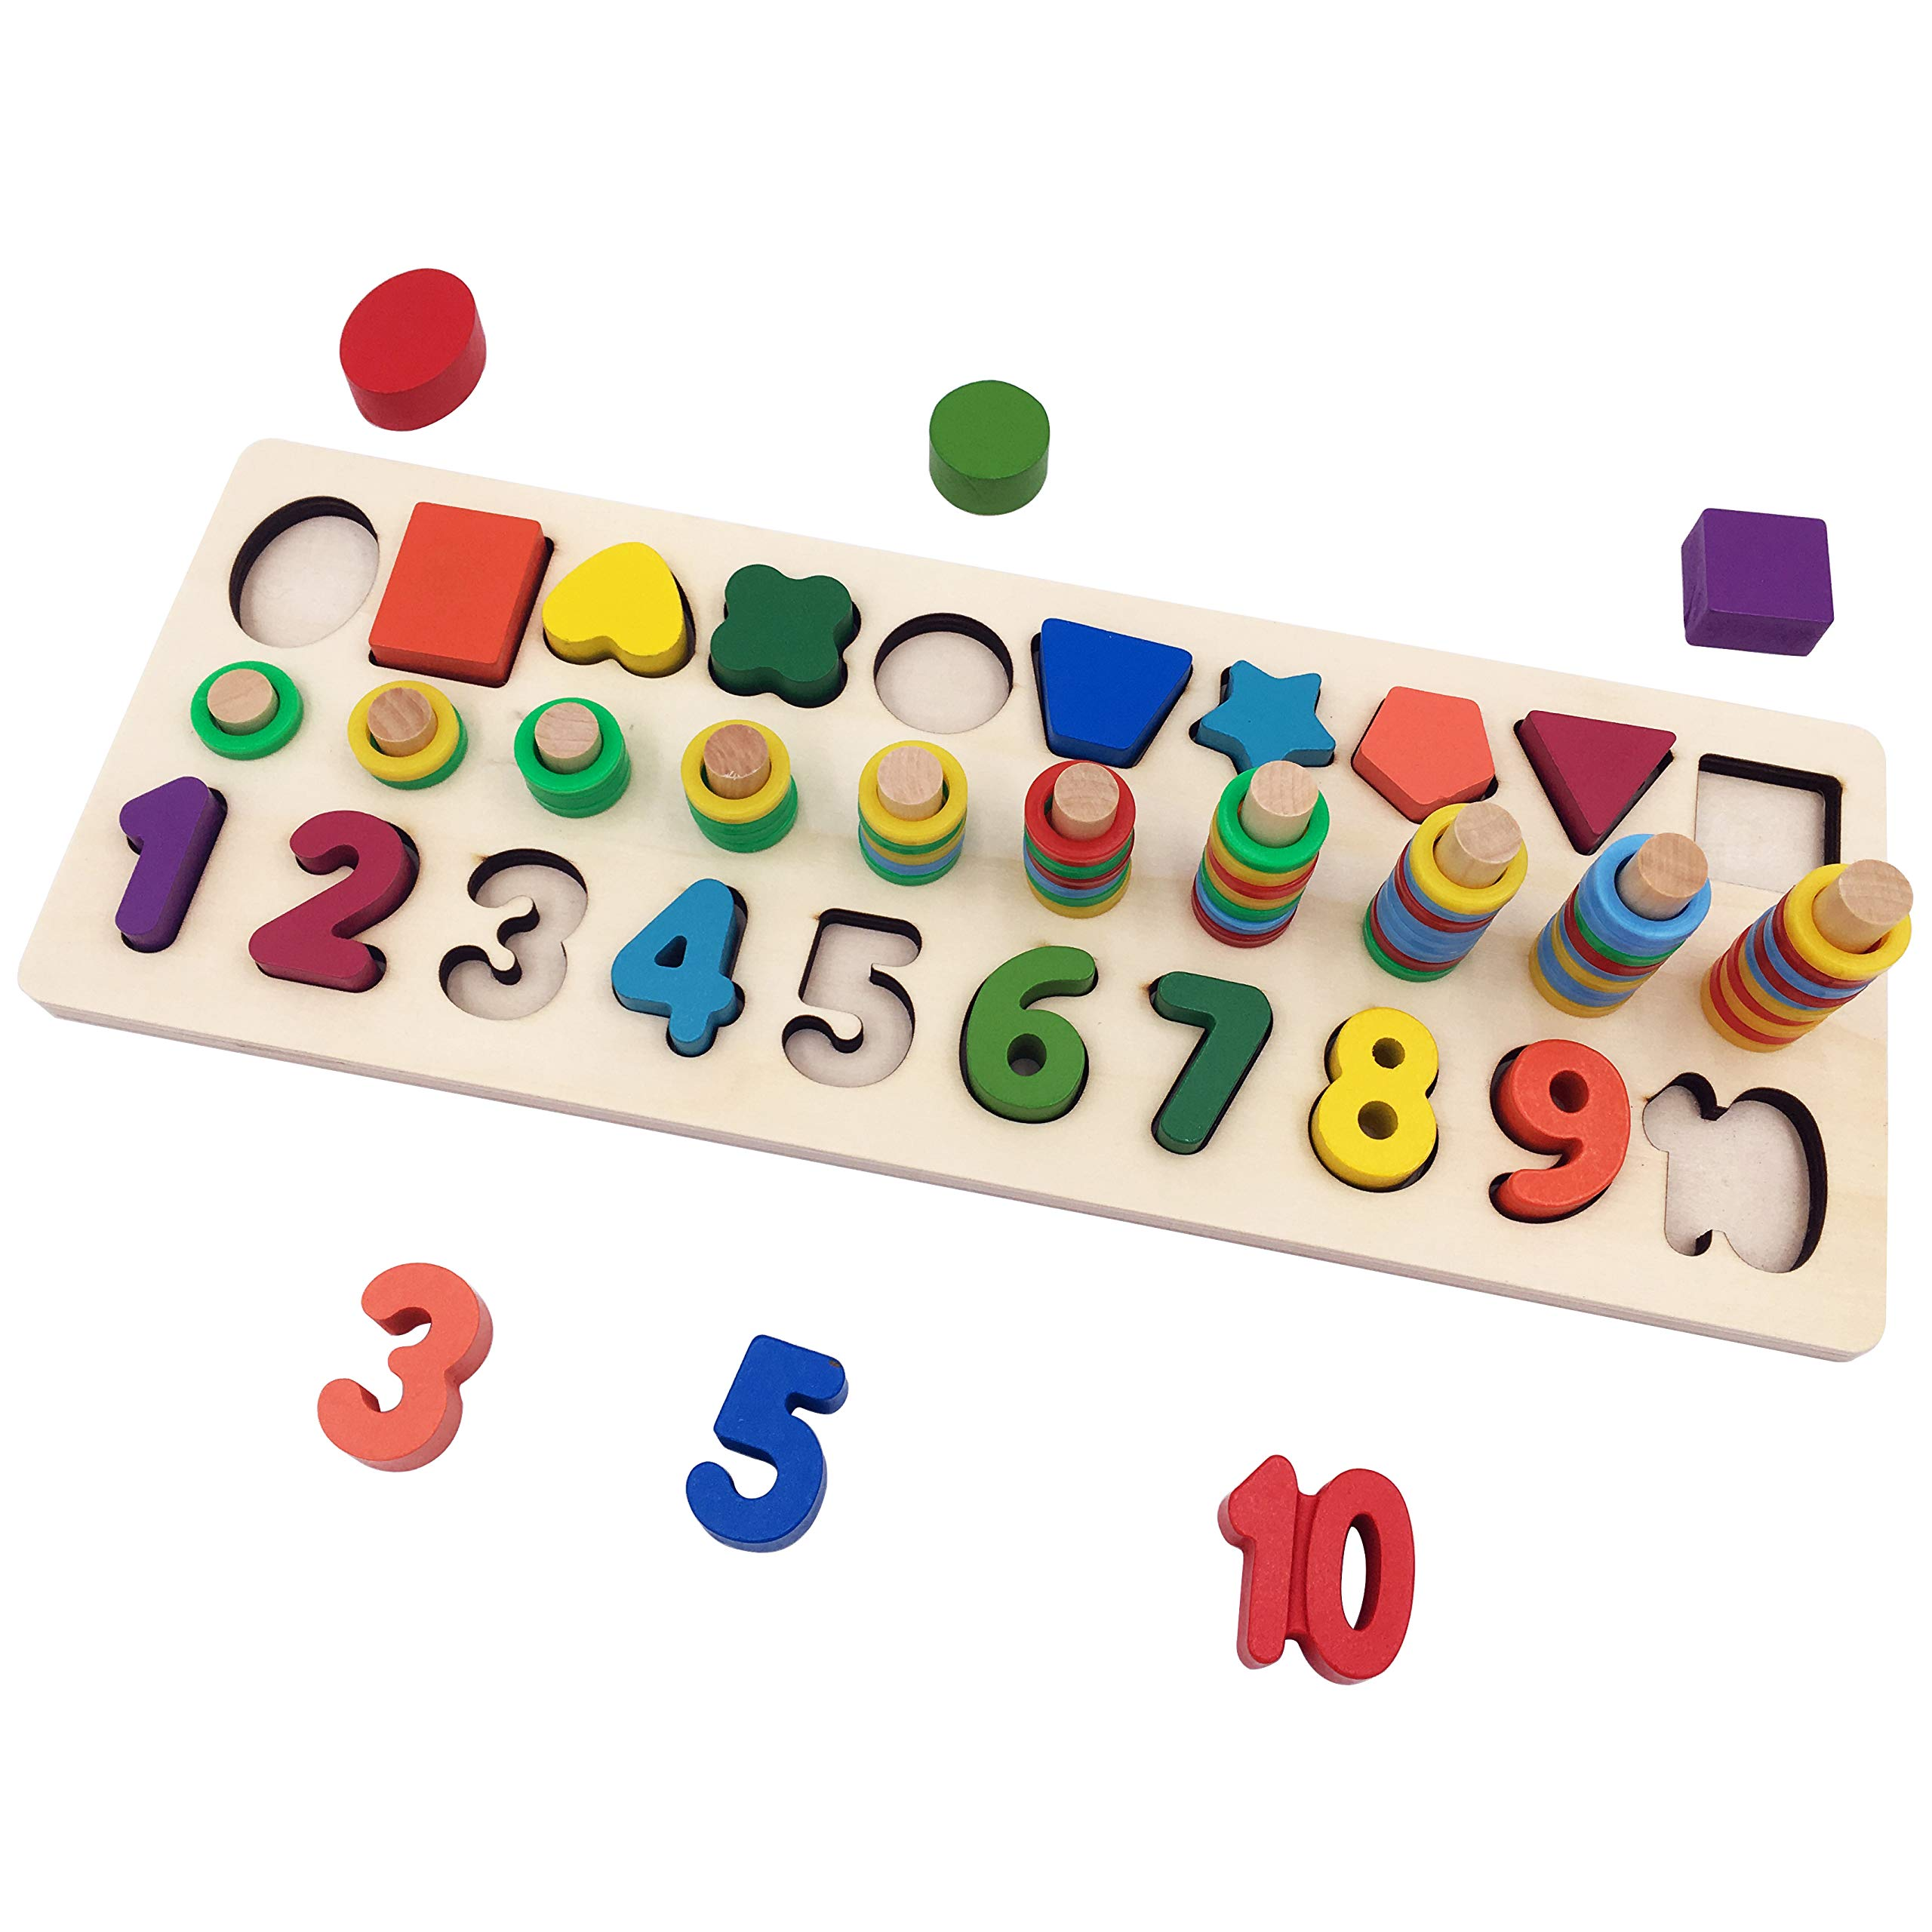 Moruska Wooden Math Game Board Number Puzzles Shape Sorter Toy Educational Math Learning Tools for Kids Teaching Counting Toy for Toddlers